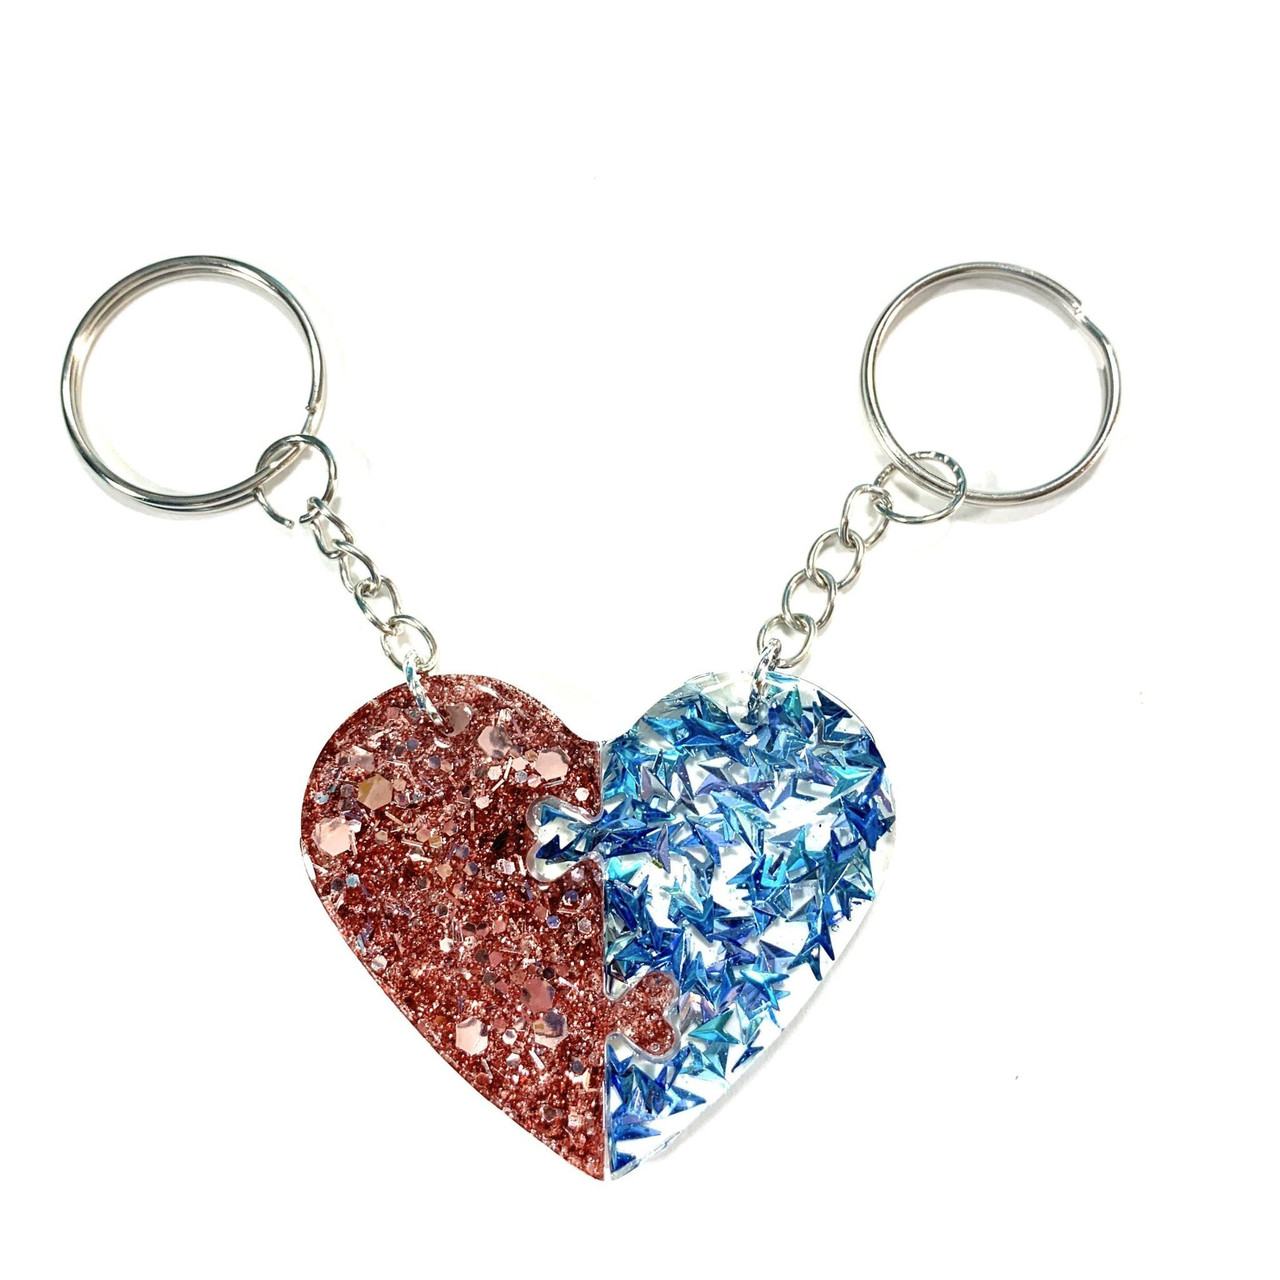 Resin Puzzle Keychain Hearts